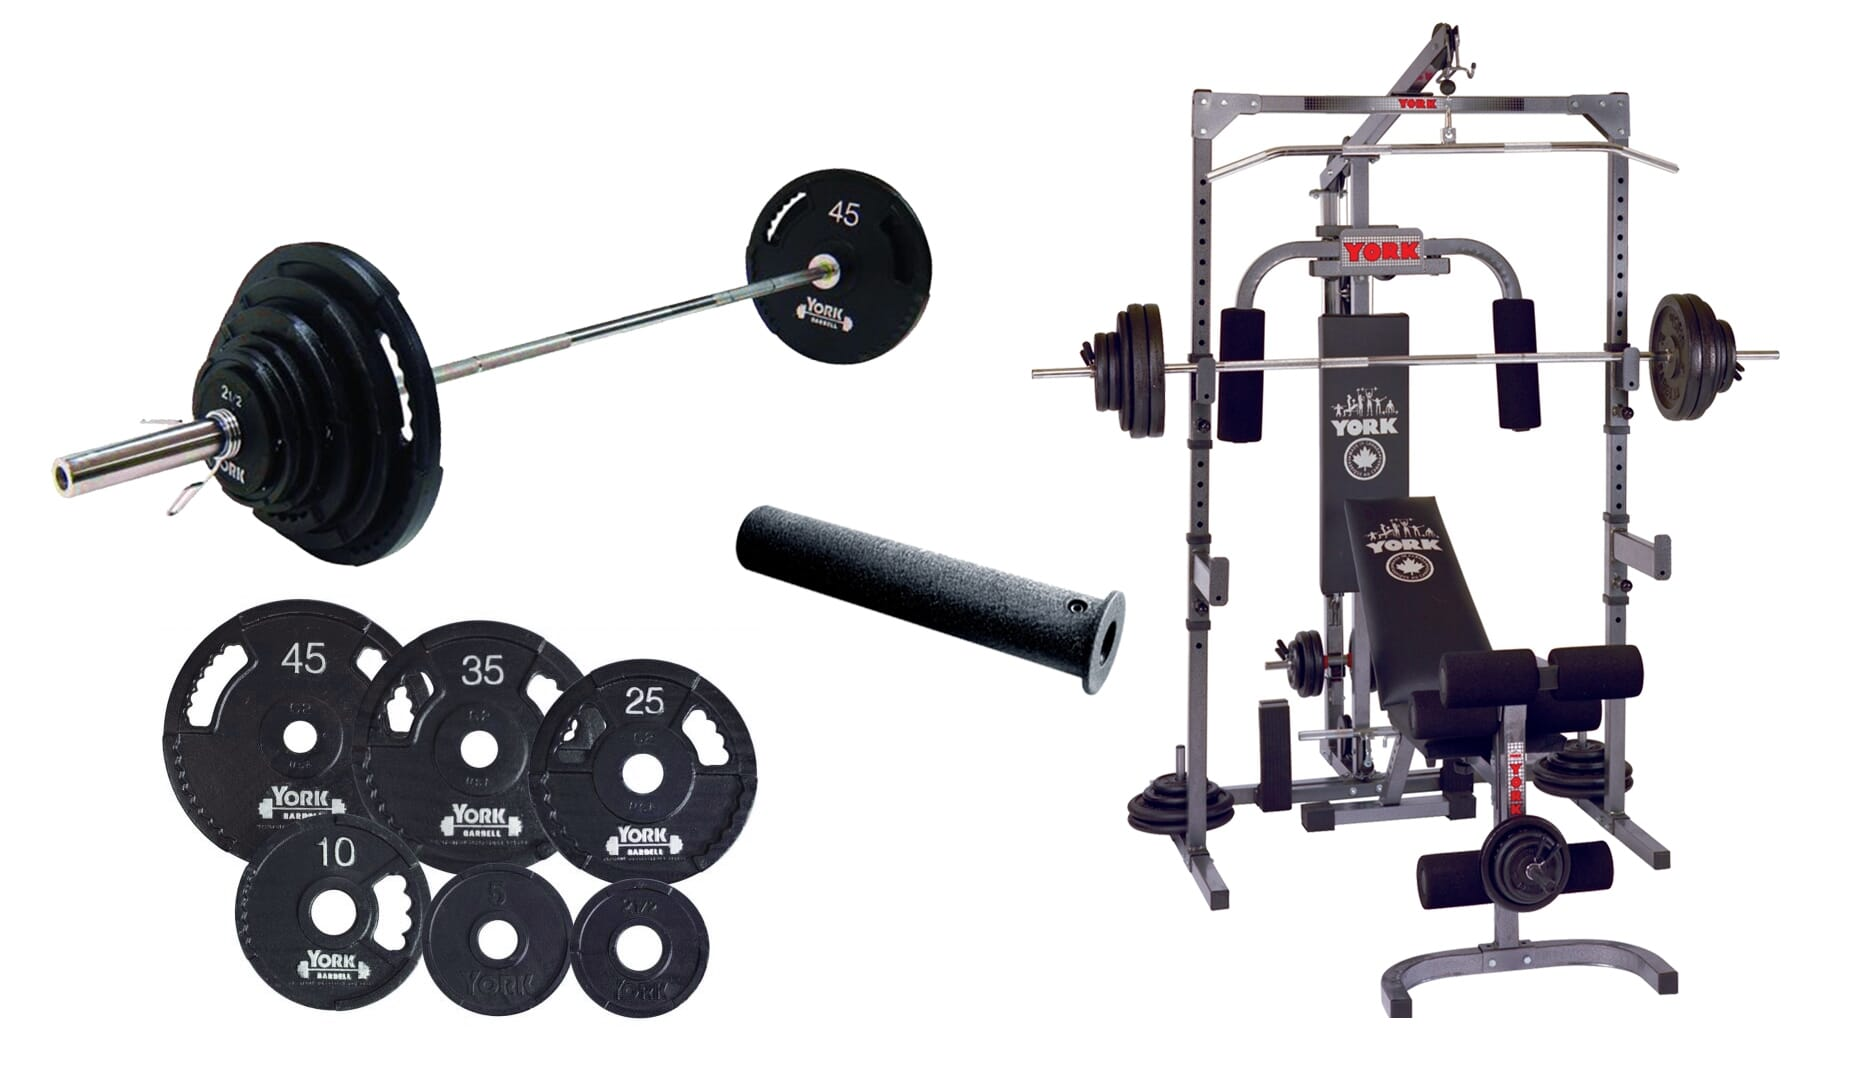 York Barbell Basic Training Power Cage With Pulley and Barbell System